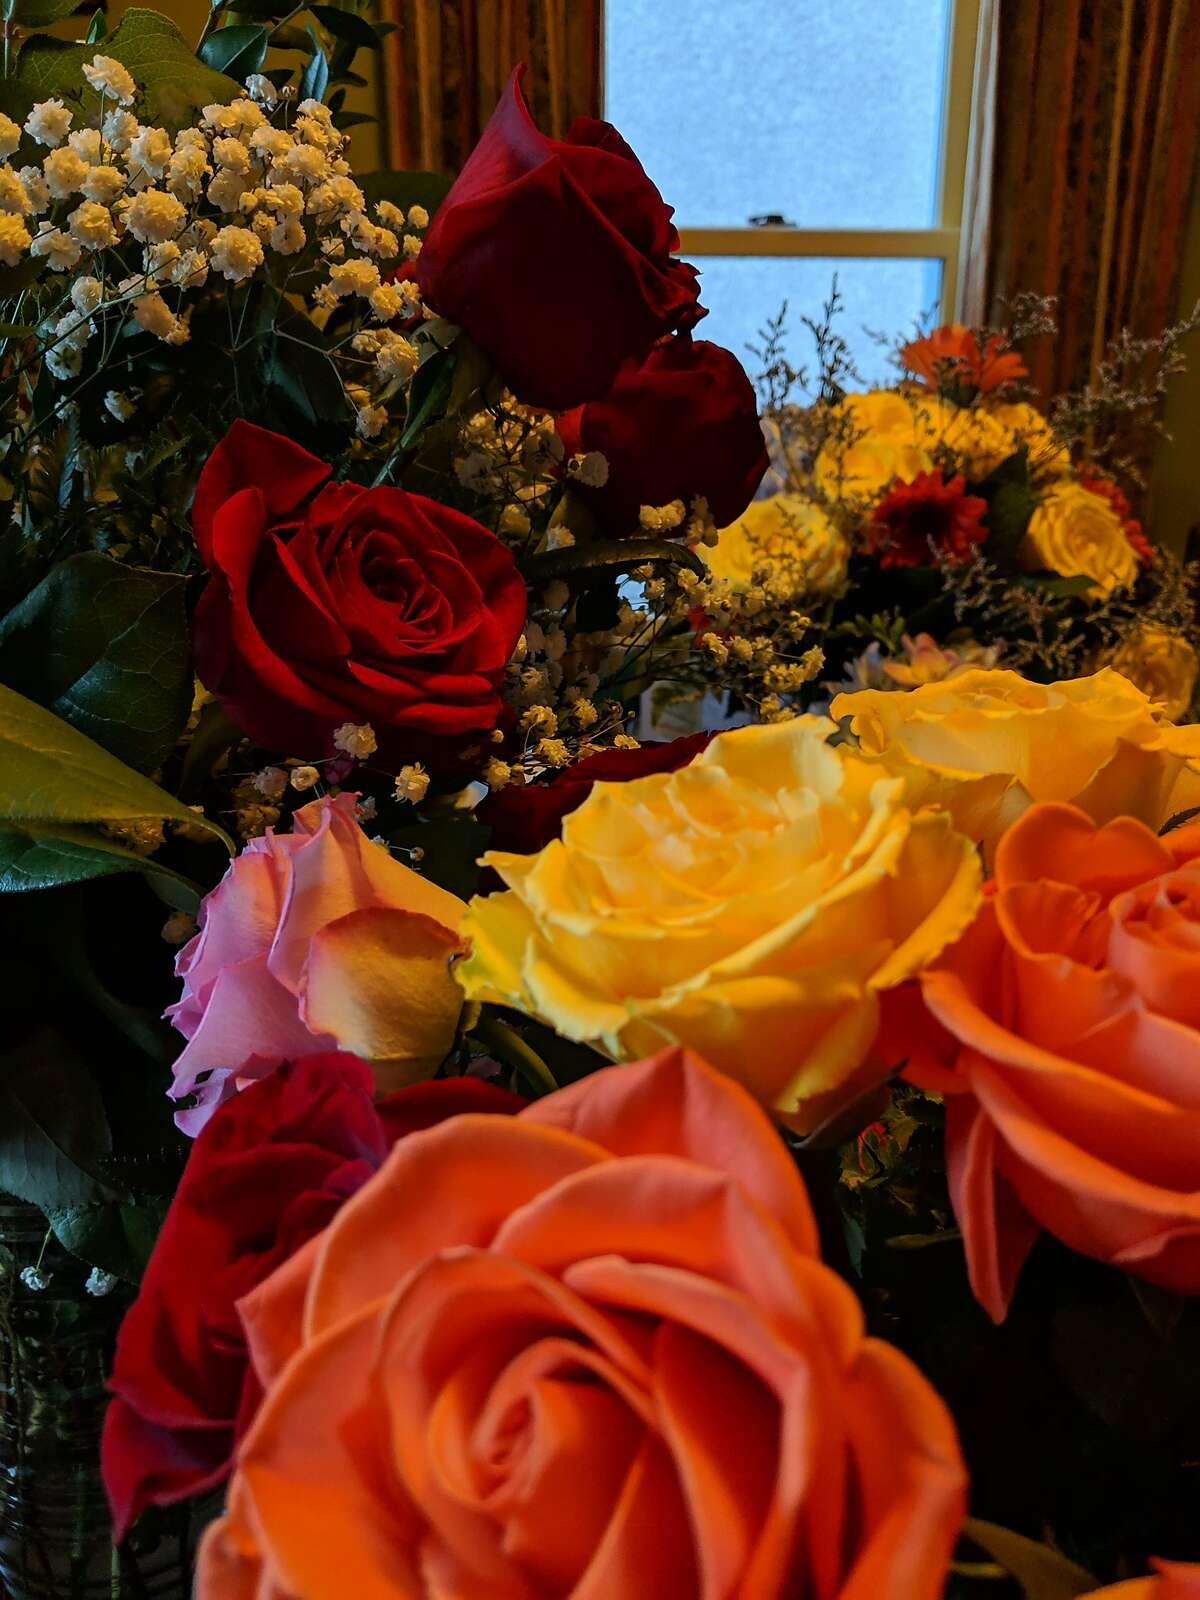 One of the bouquets received by Greg Scanlan and Brad Althoff on their wedding day.